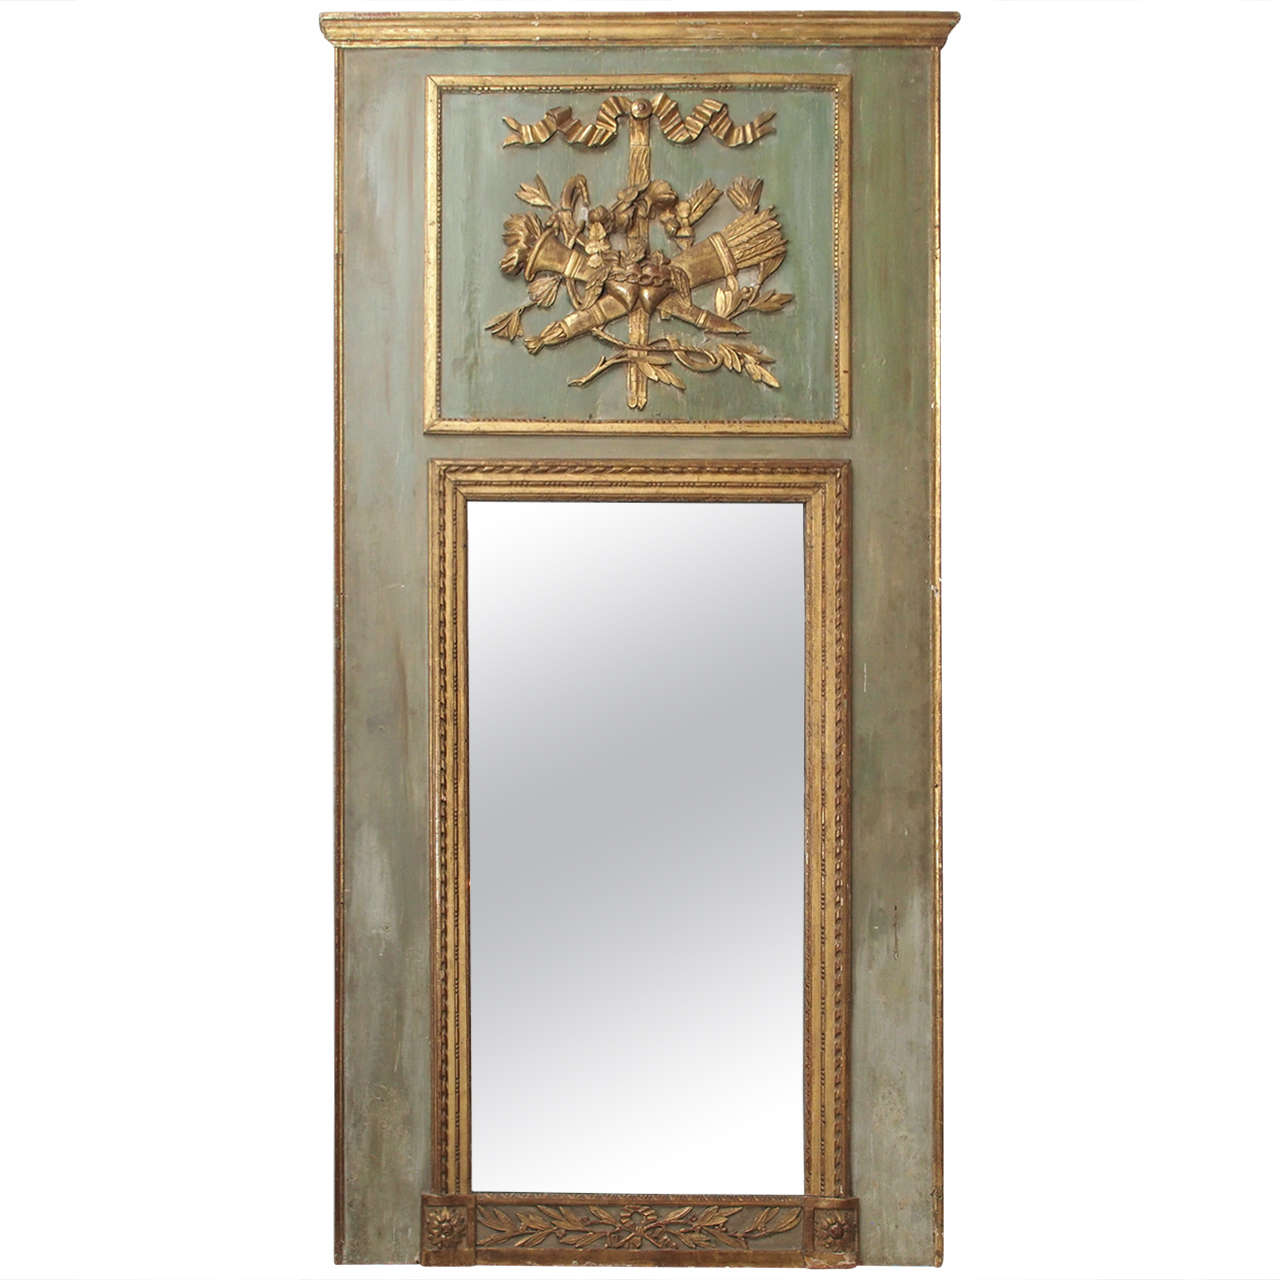 Louis XVI Trumeau Mirror at 1stdibs